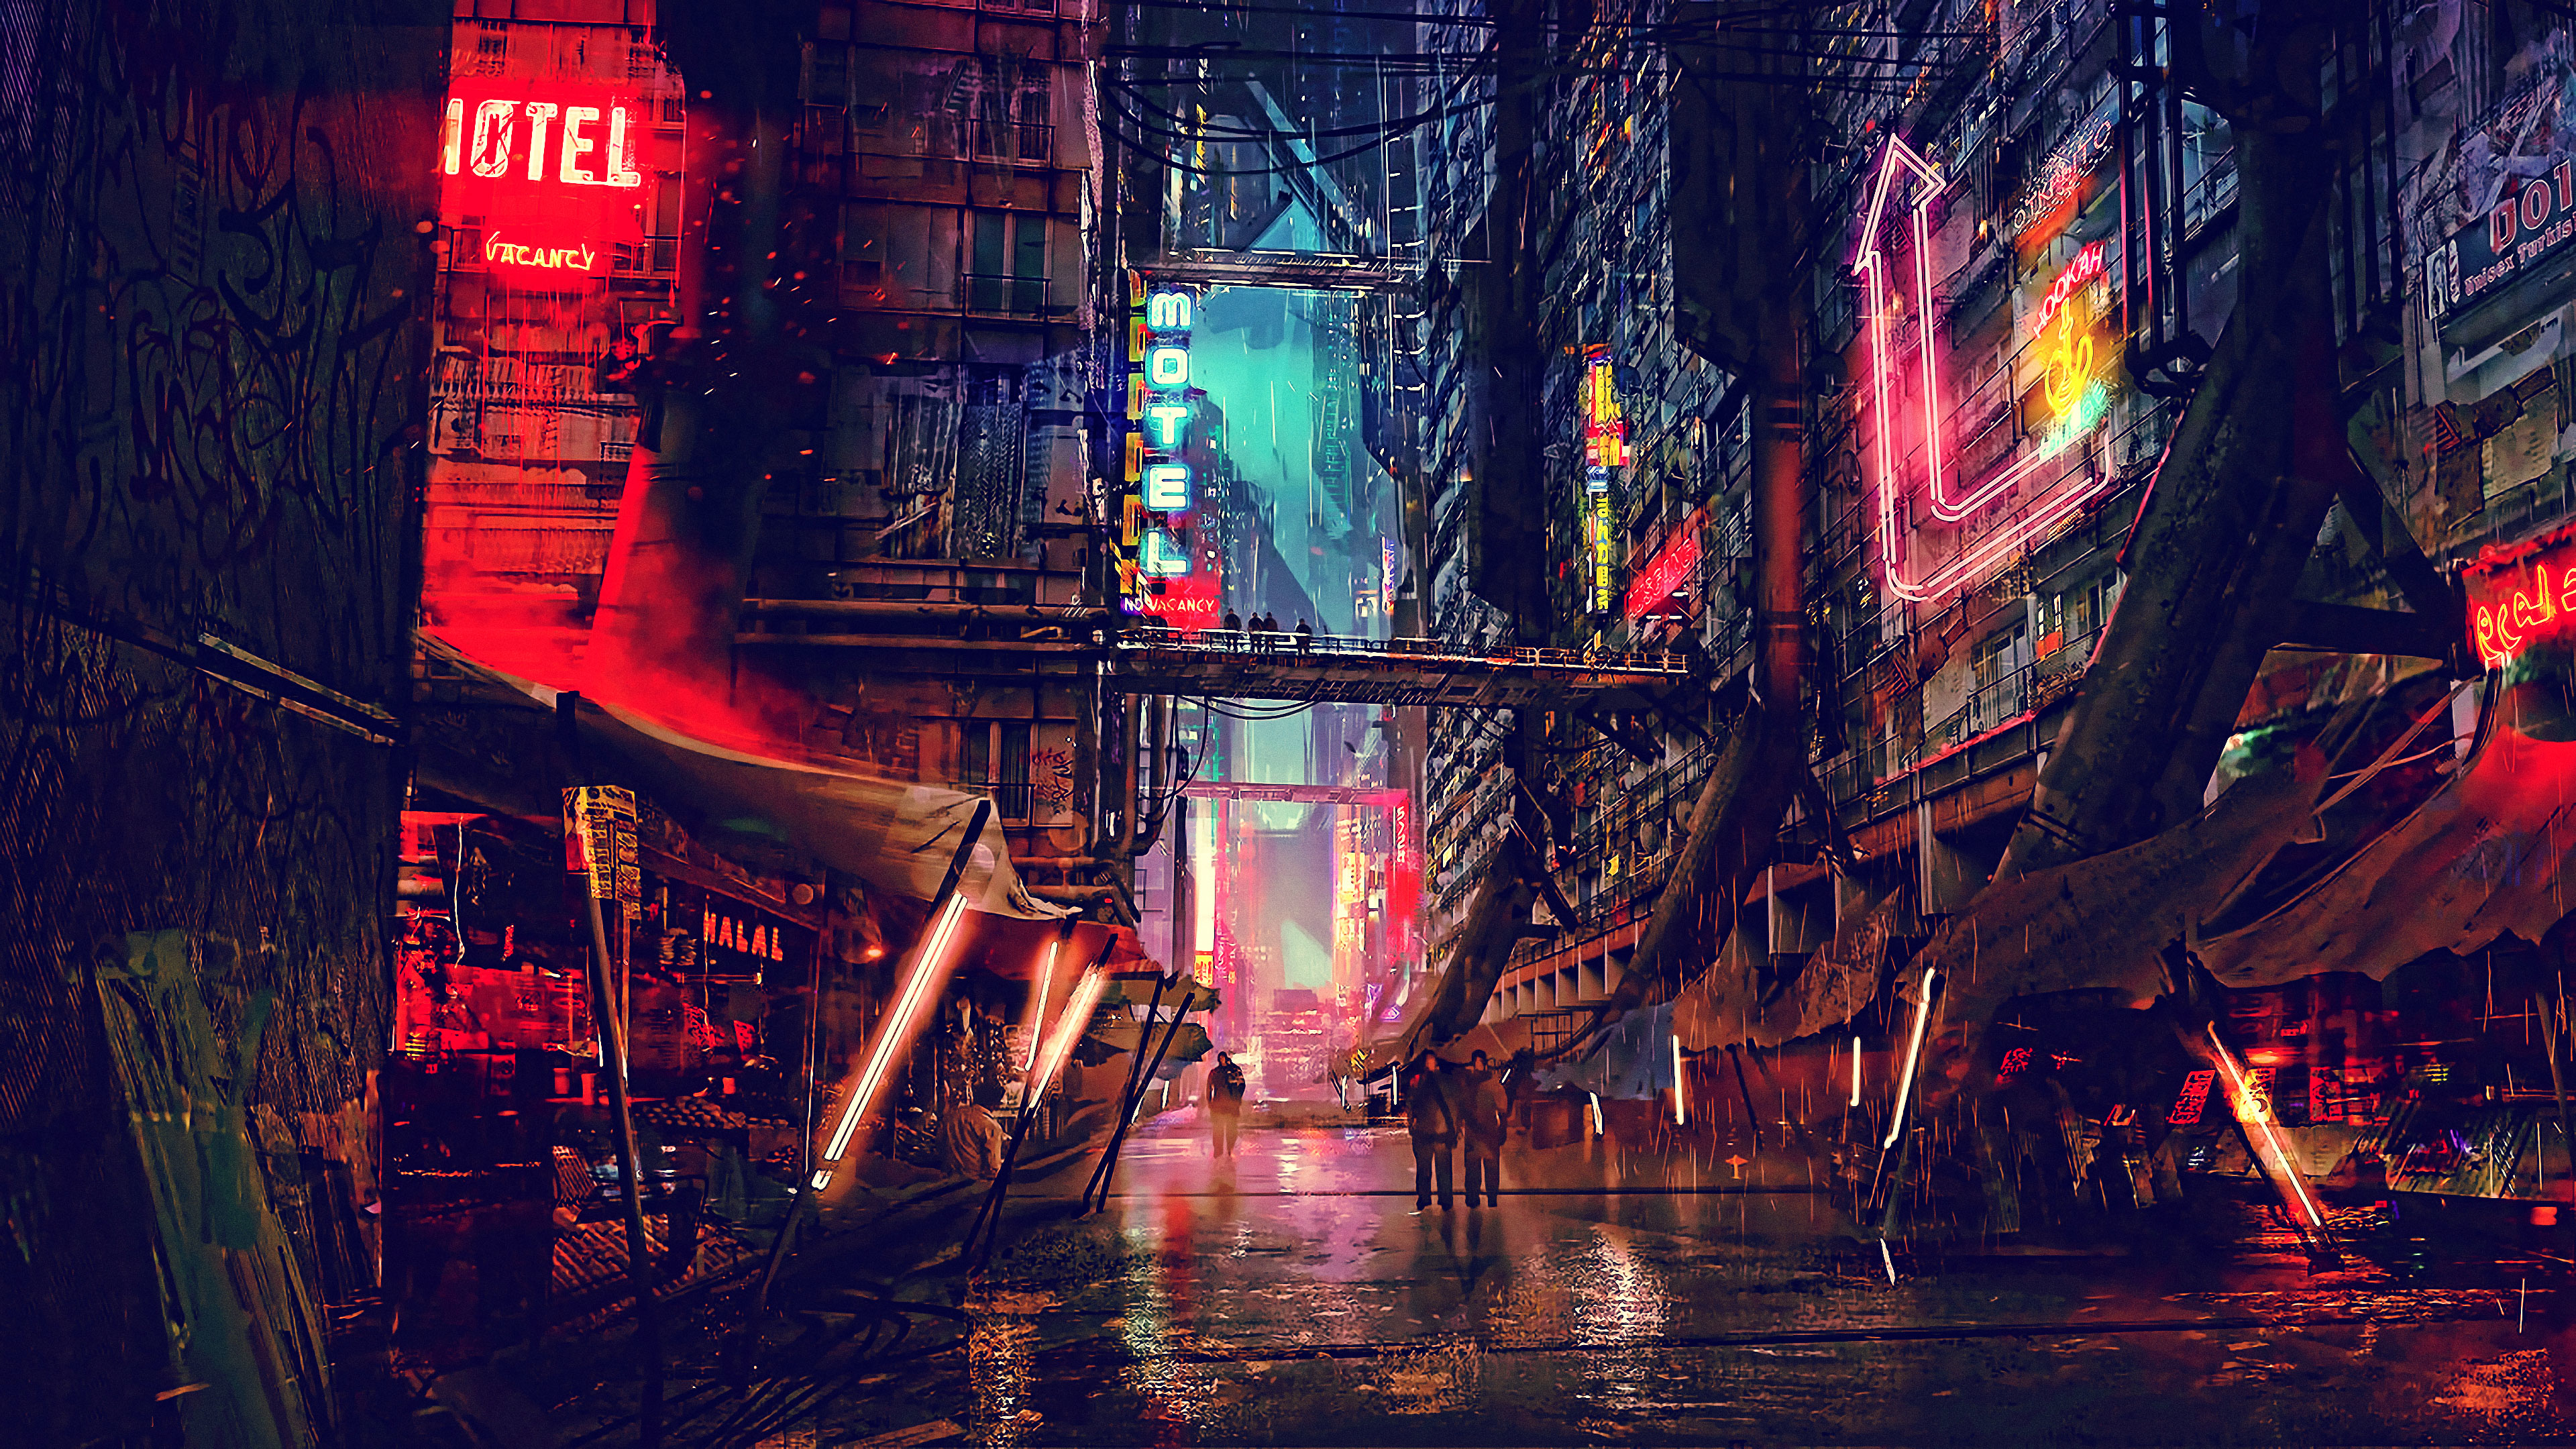 320x480 Sci Fi Cyberpunk City Apple Iphone Ipod Touch Galaxy Ace Wallpaper Hd Fantasy 4k Wallpapers Images Photos And Background